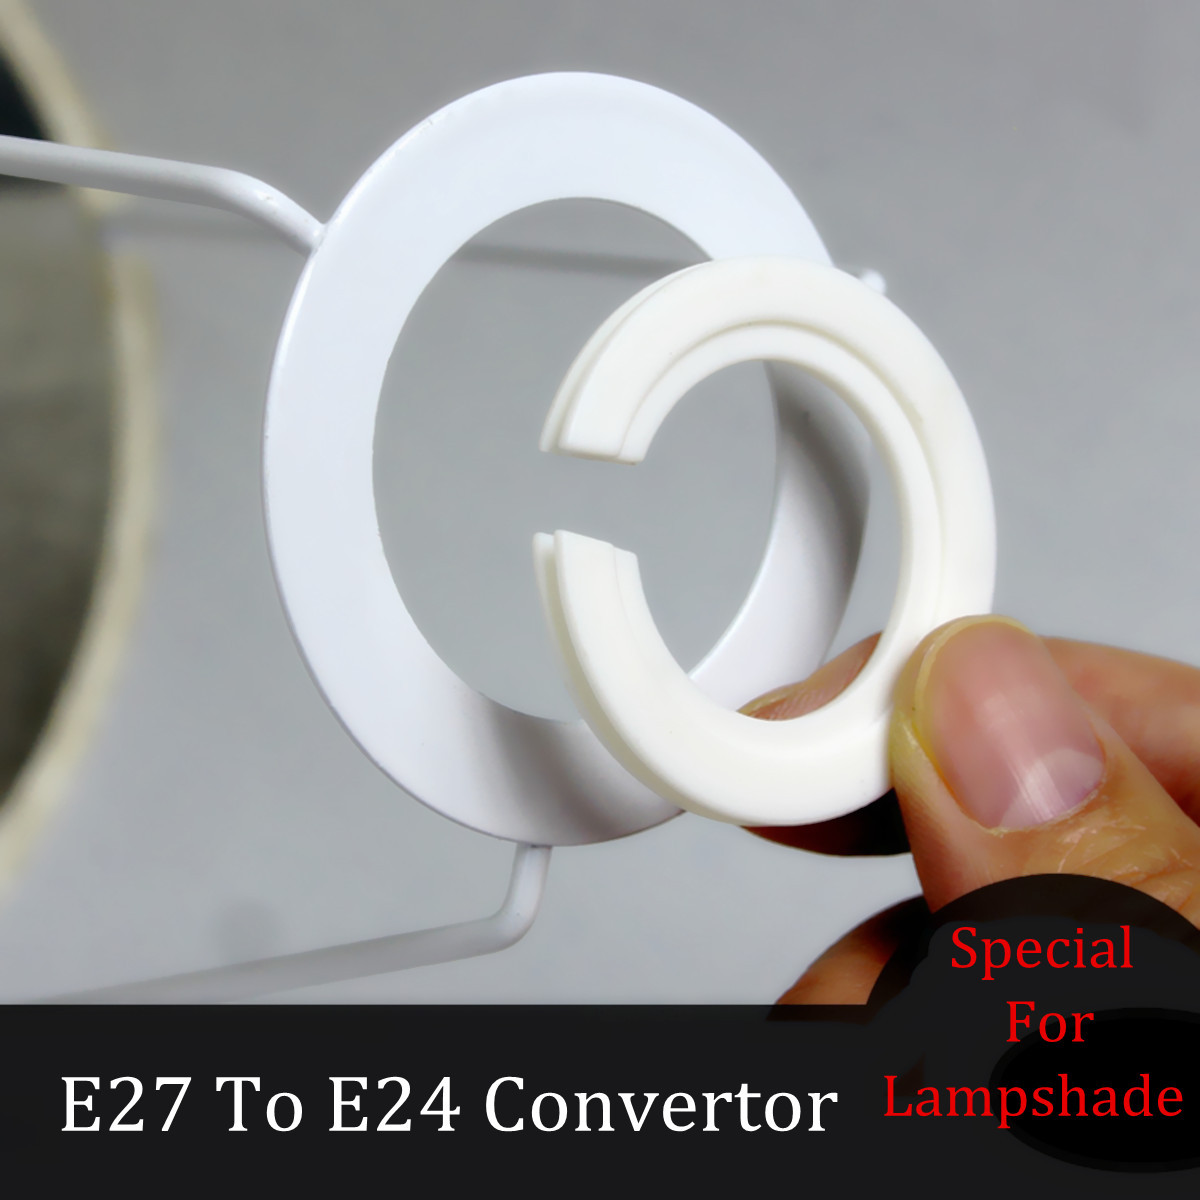 Lampshade Ring Adapter Lamp Light Shades Socket Reducing Ring Adapter Washer For E27 To E14 Lamp Shades Accessories